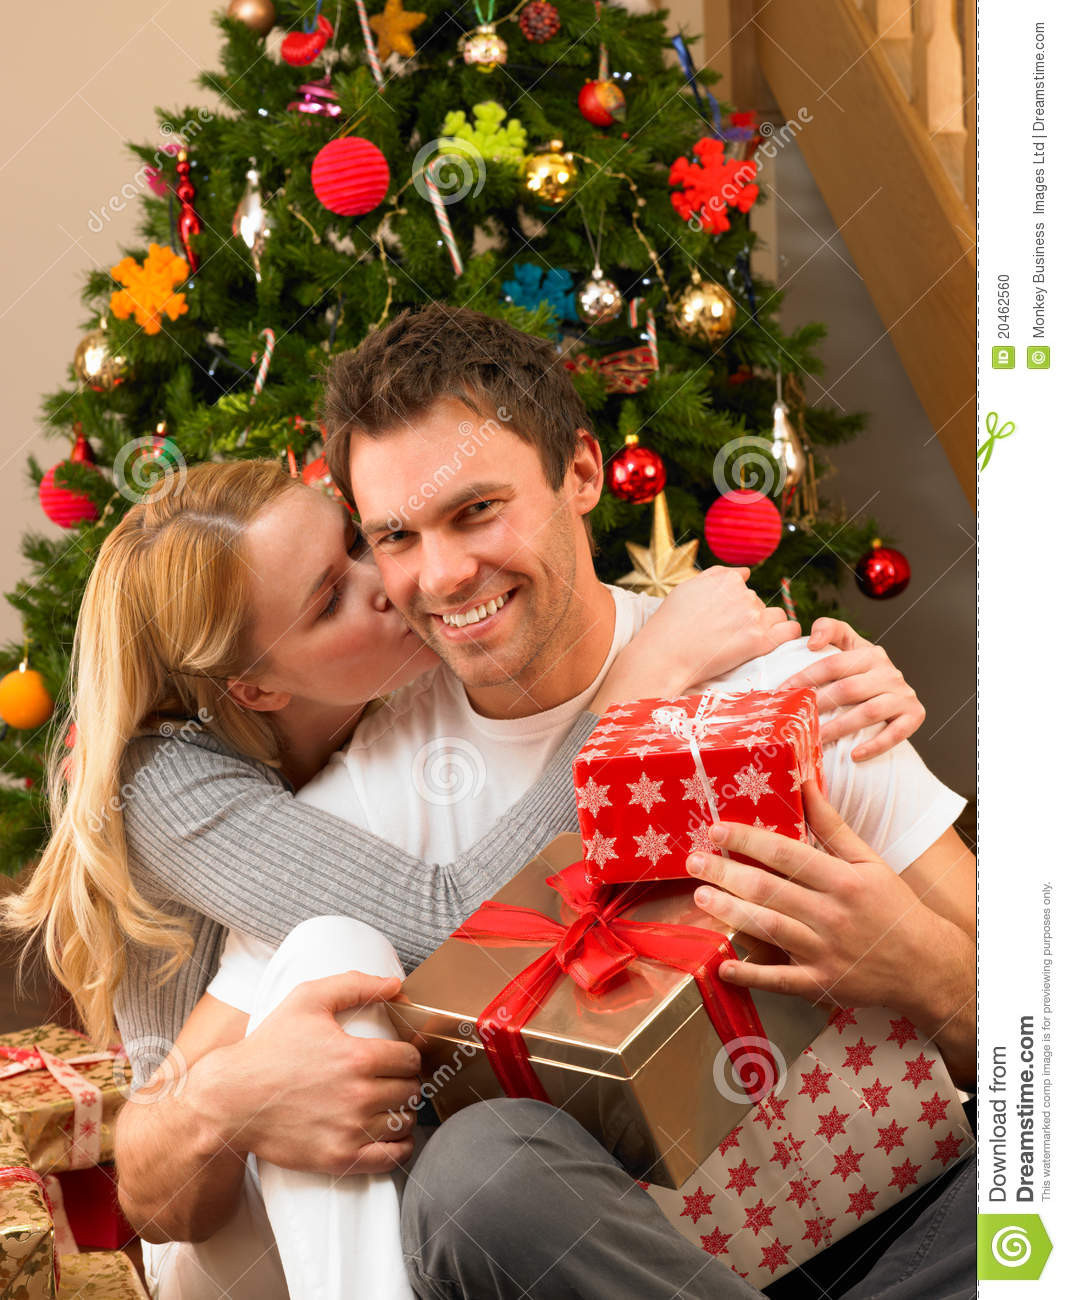 Gift Ideas For Young Couple  Young Couple With Gifts In Front Christmas Tree Stock